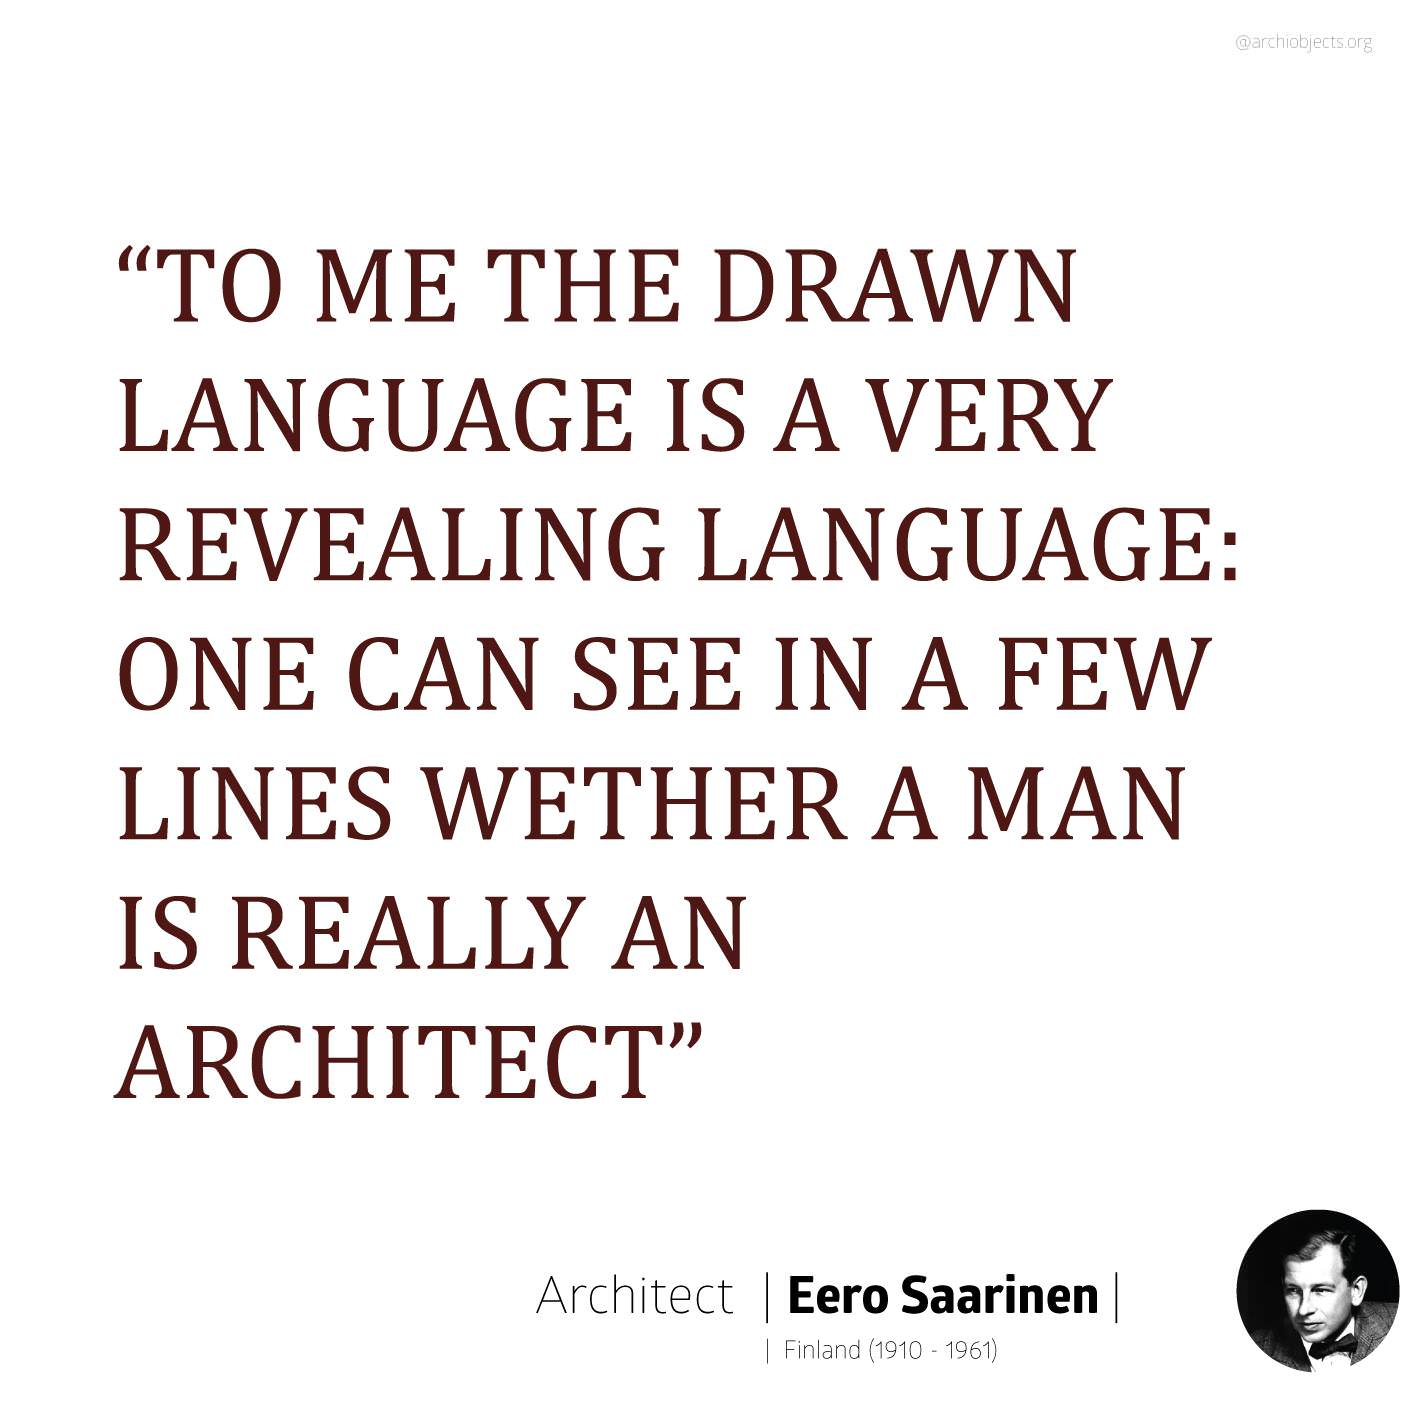 eero saarinen Architectural Quotes - Worth spreading Architects' voice